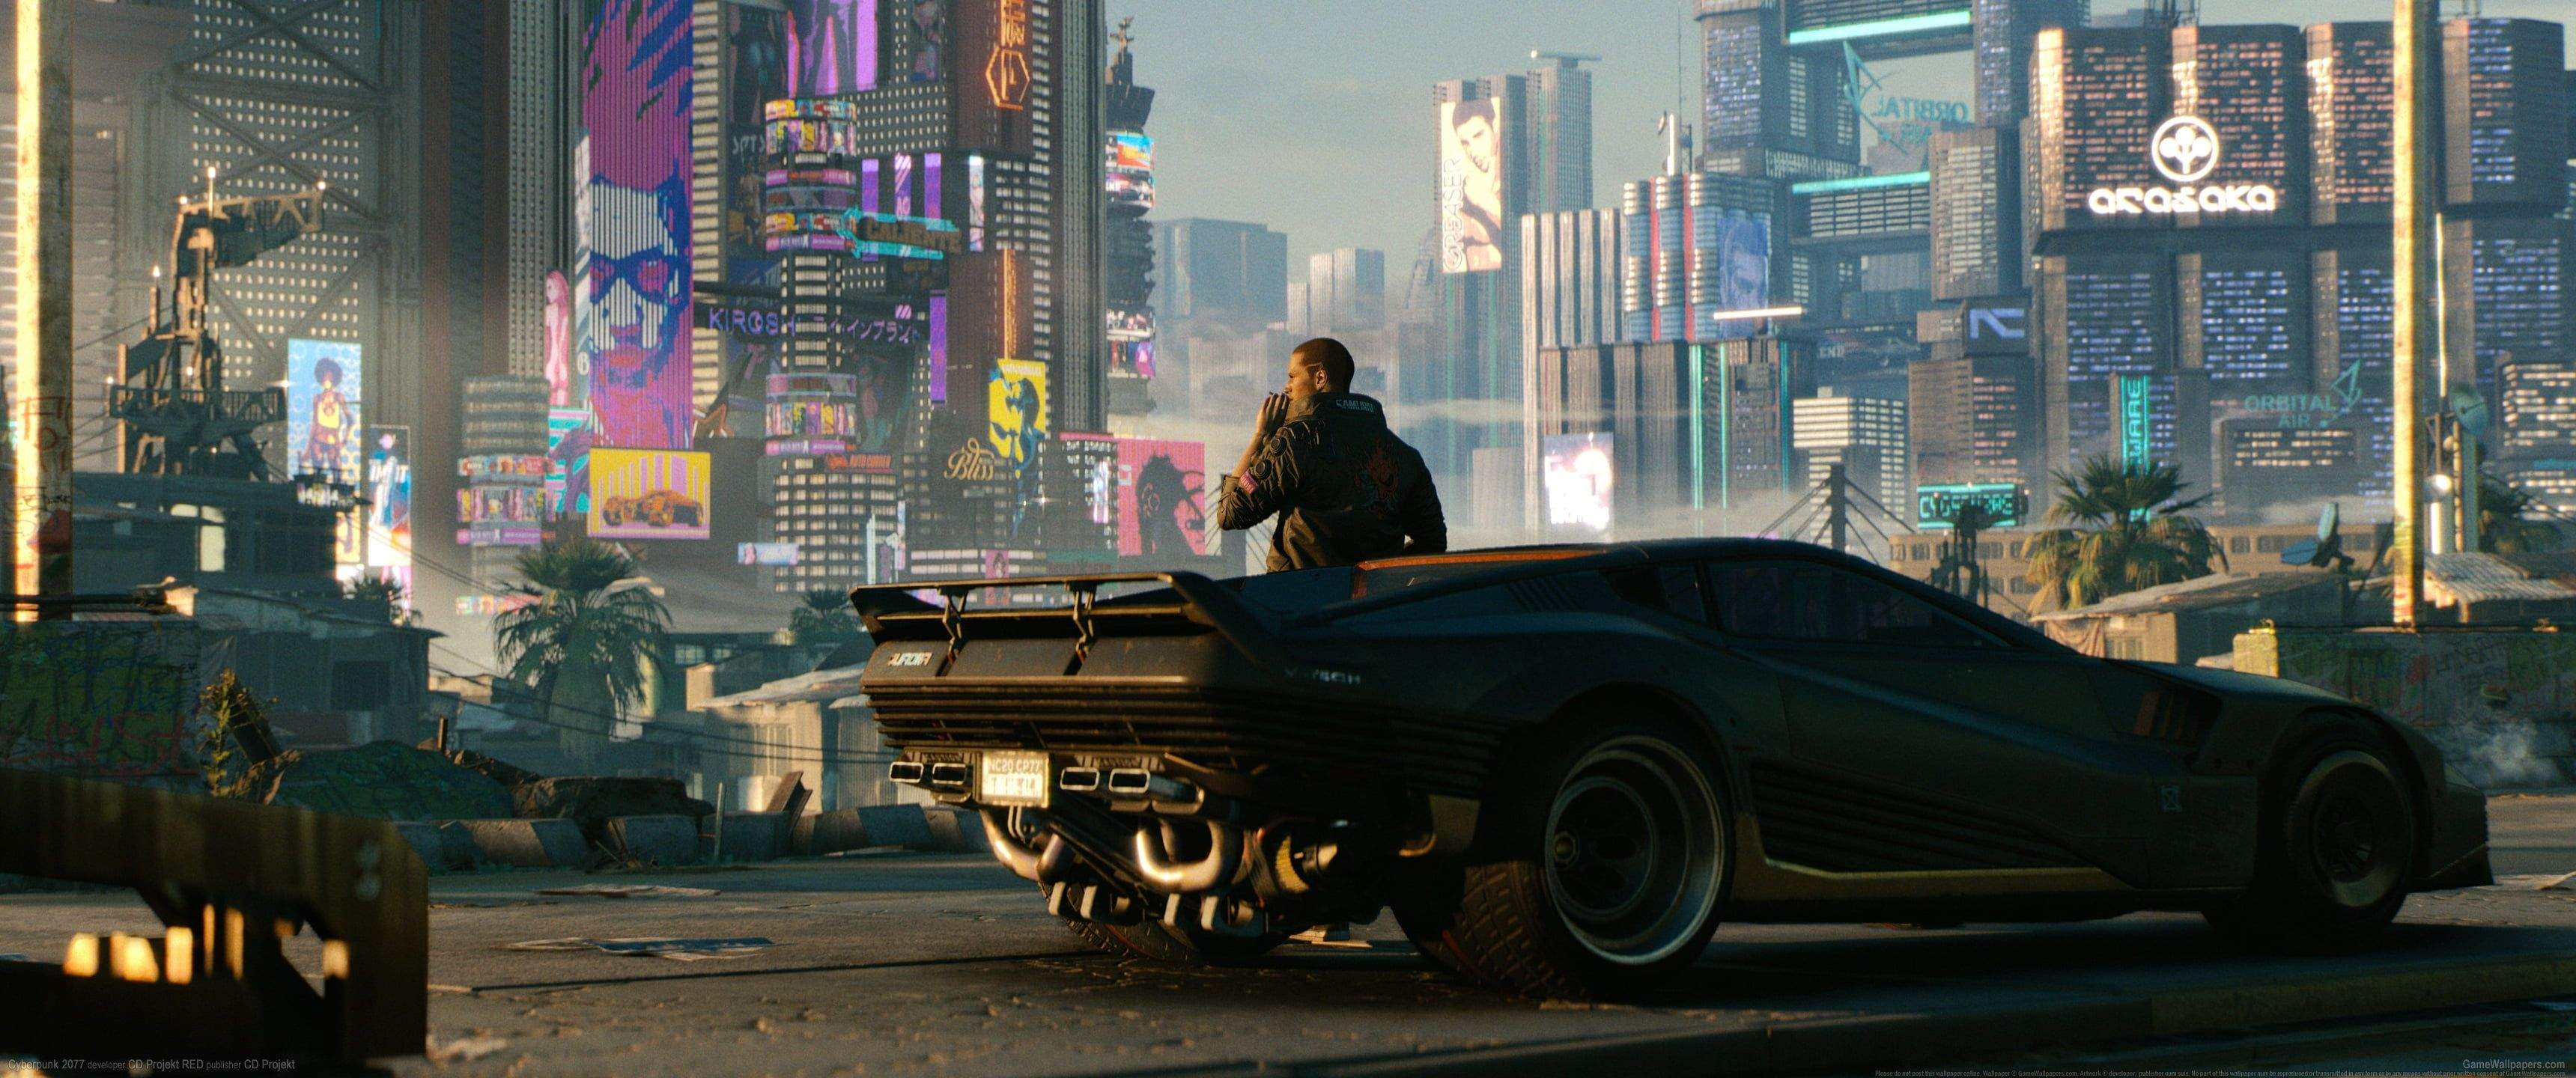 Black Sports Car Video Games Cyberpunk Cyberpunk 2077 Ultrawide Ultra Wide 2k Wallpaper Hdwallpaper Desk Cyberpunk 2077 Trailer Cyberpunk 2077 Cyberpunk